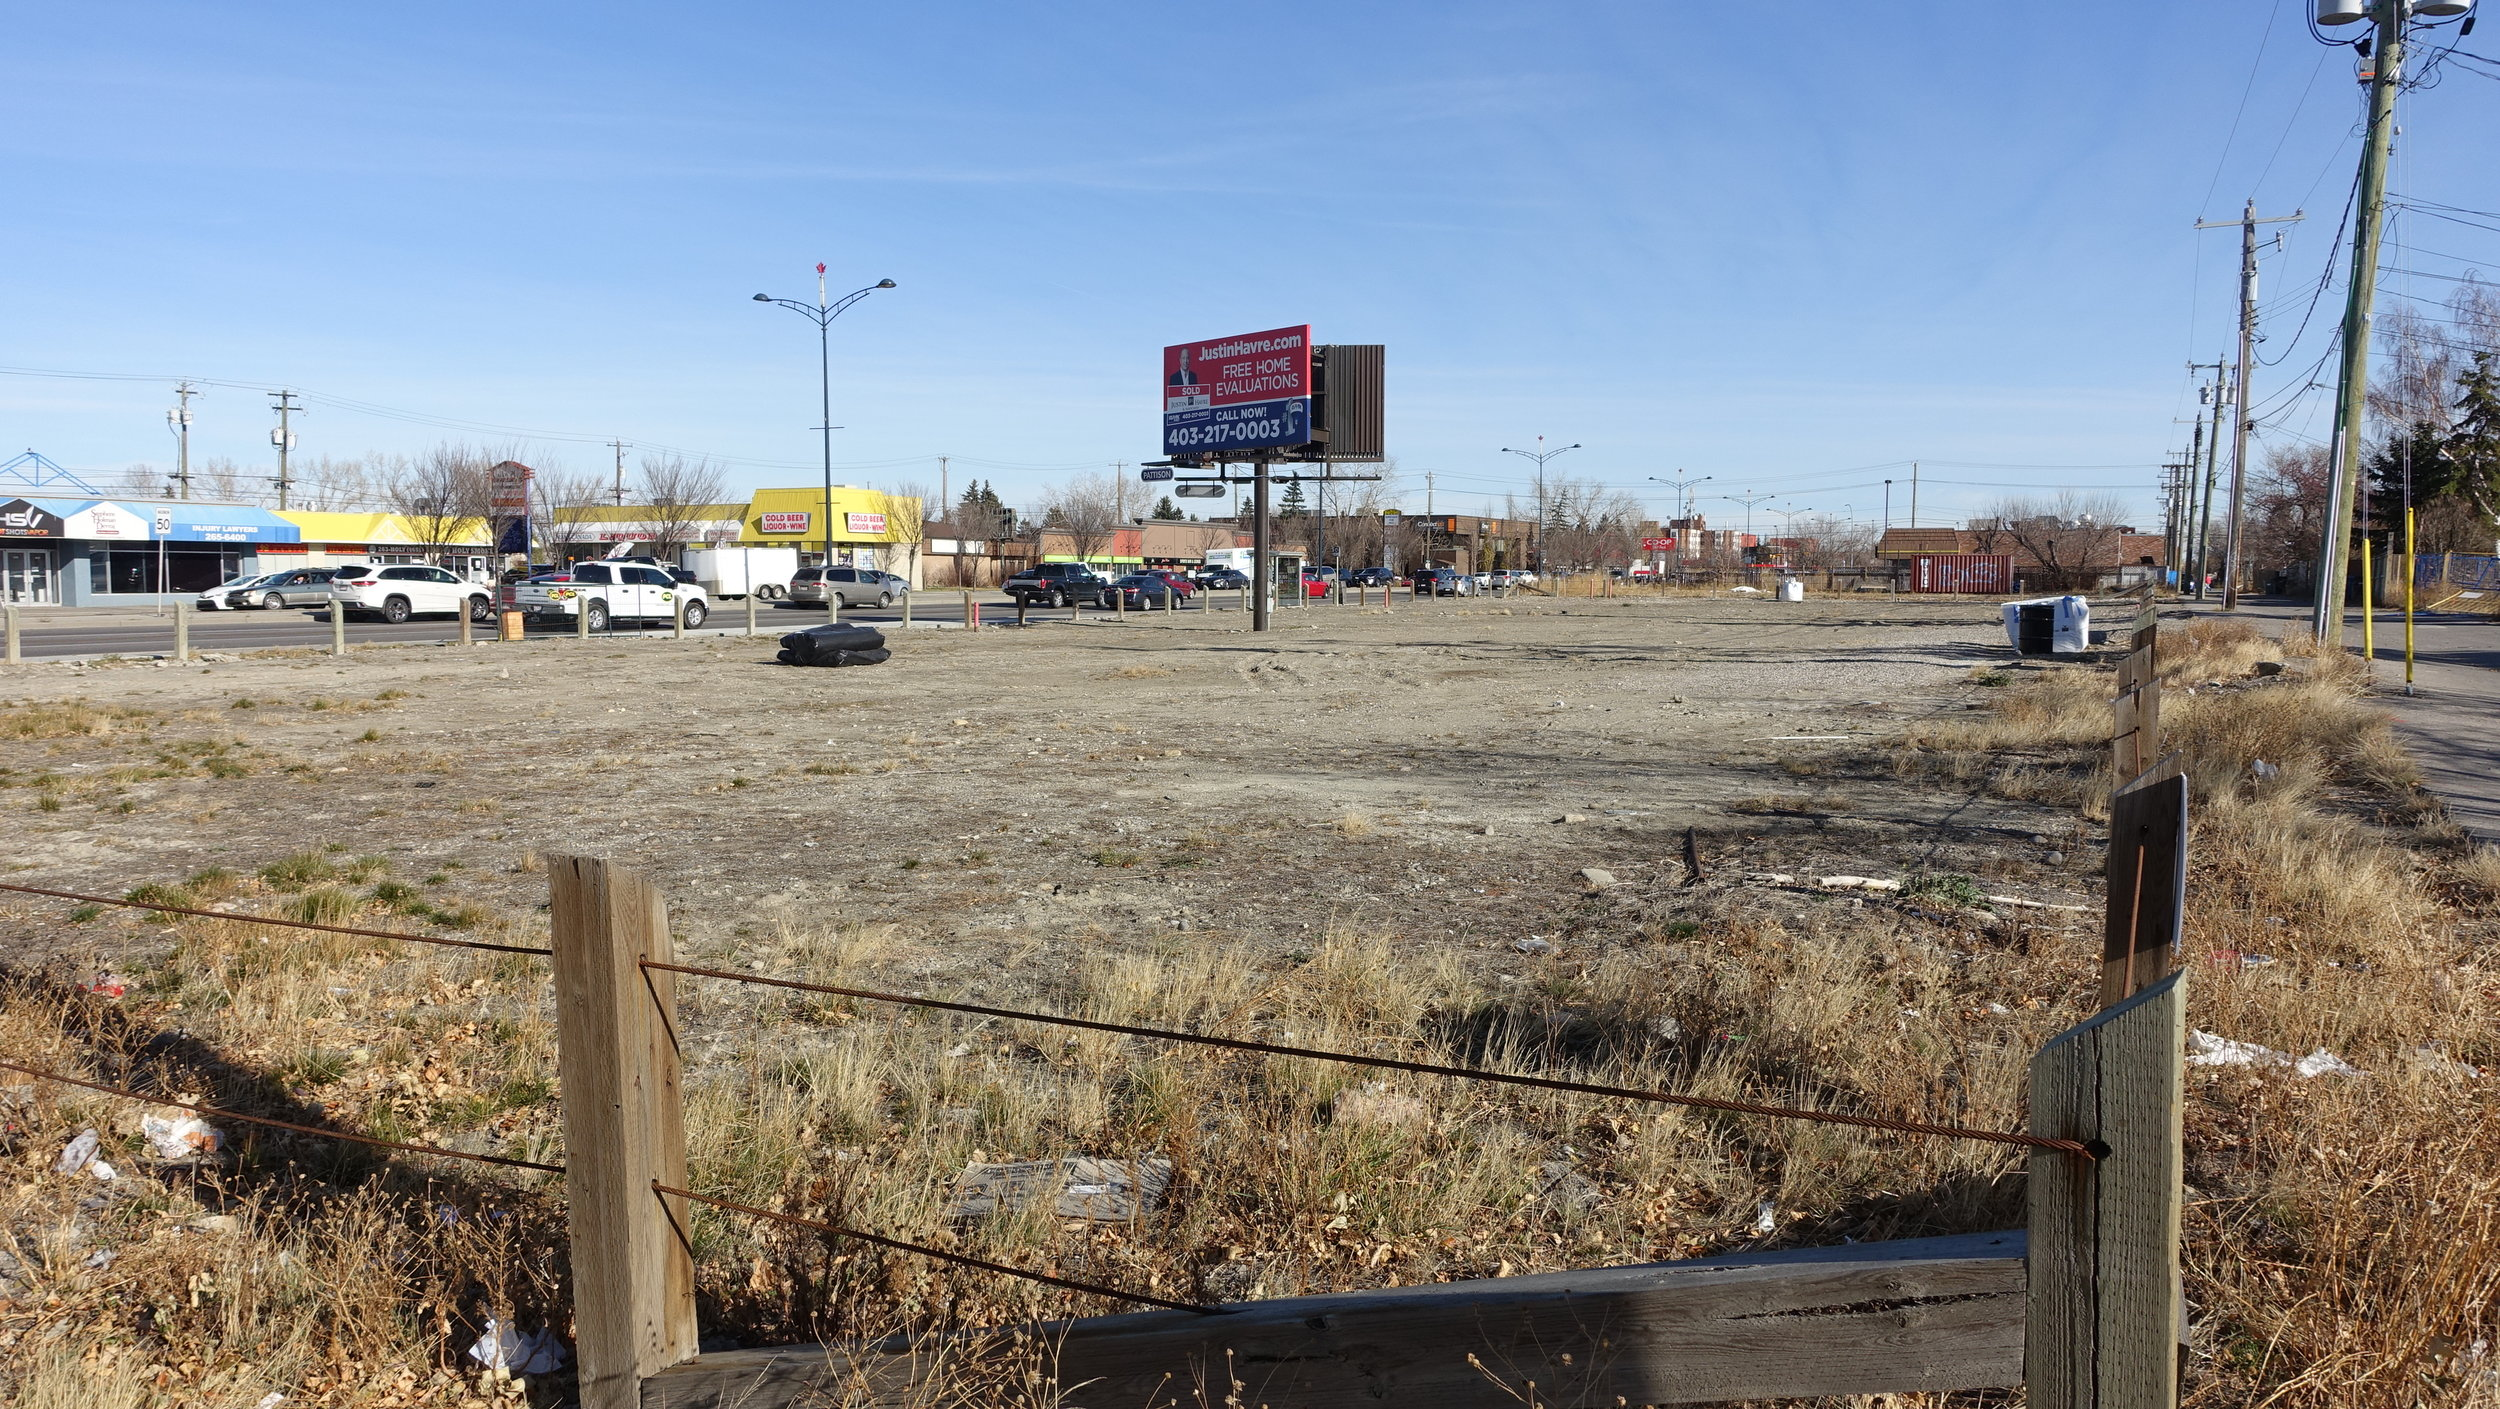 There are several long vacant lots on the south side of 16th Avenue N that should have been developed by now even in the recession.